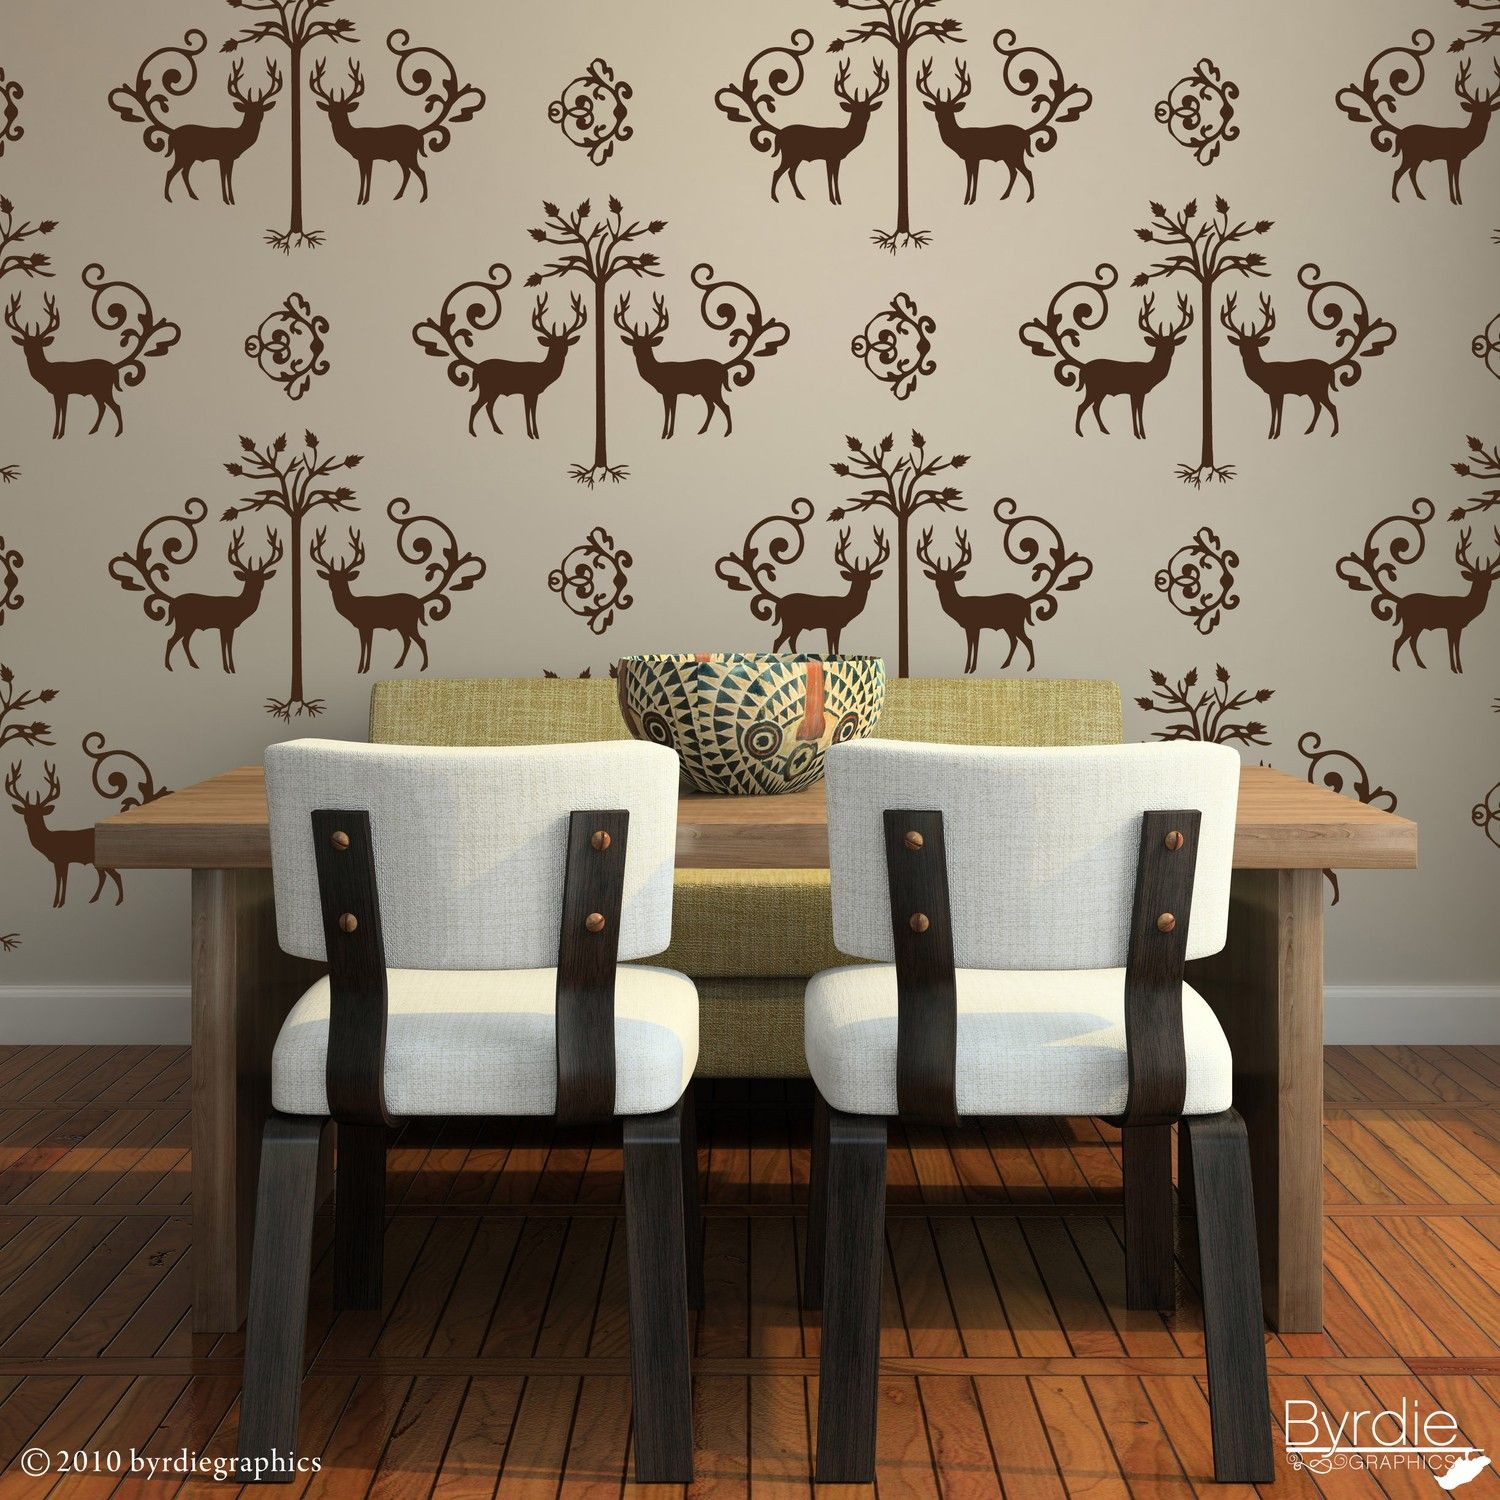 Large Deer And Tree Damask Vinyl Wall Decals  20 Graphics, Wallpaper,  Stickers, Wall Pattern, Item 10036